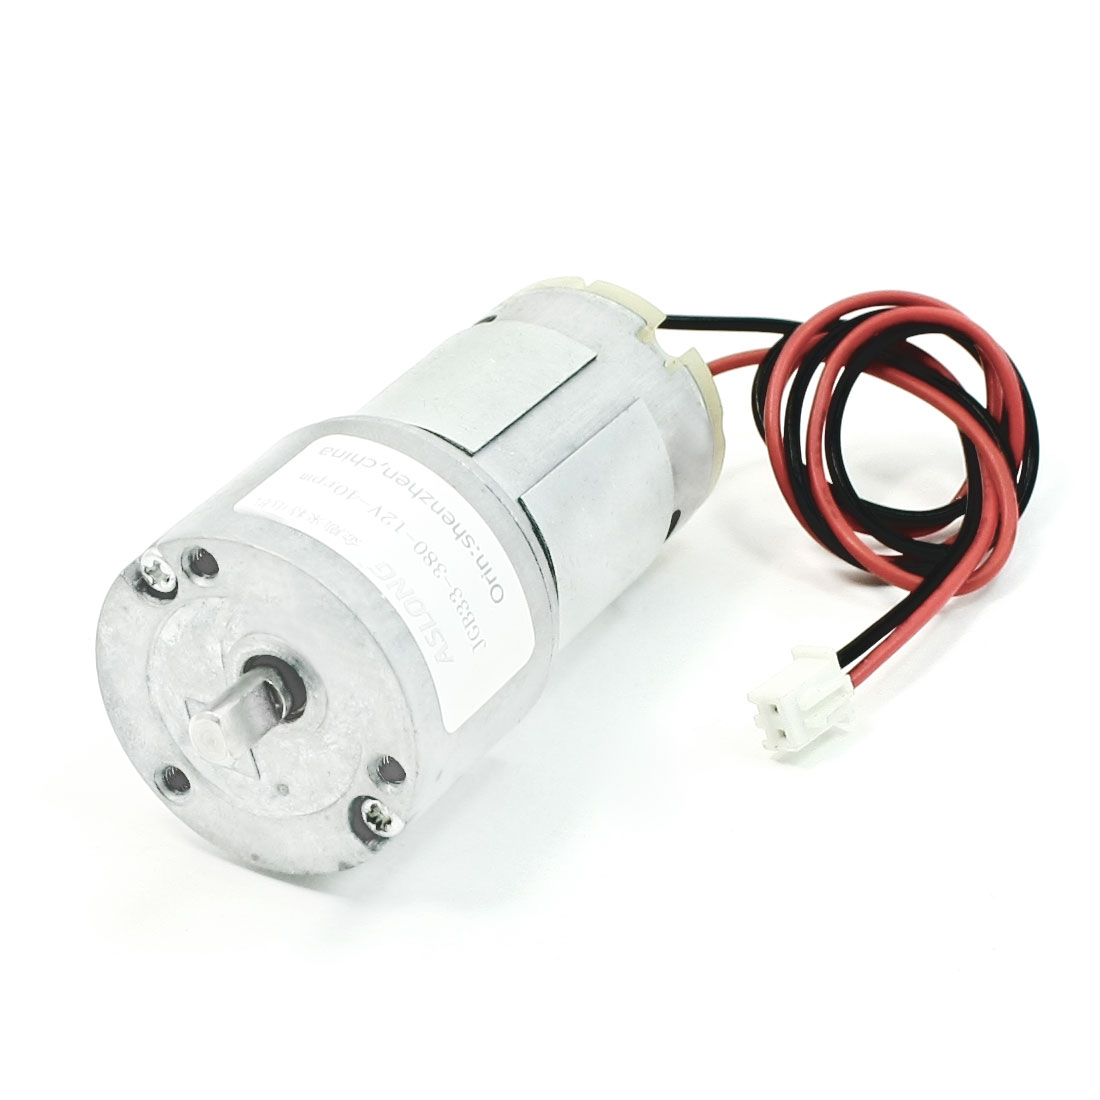 DC 12V 4.3mm Diameter Drive Shaft 40RPM Geared Speed Reducing Motor